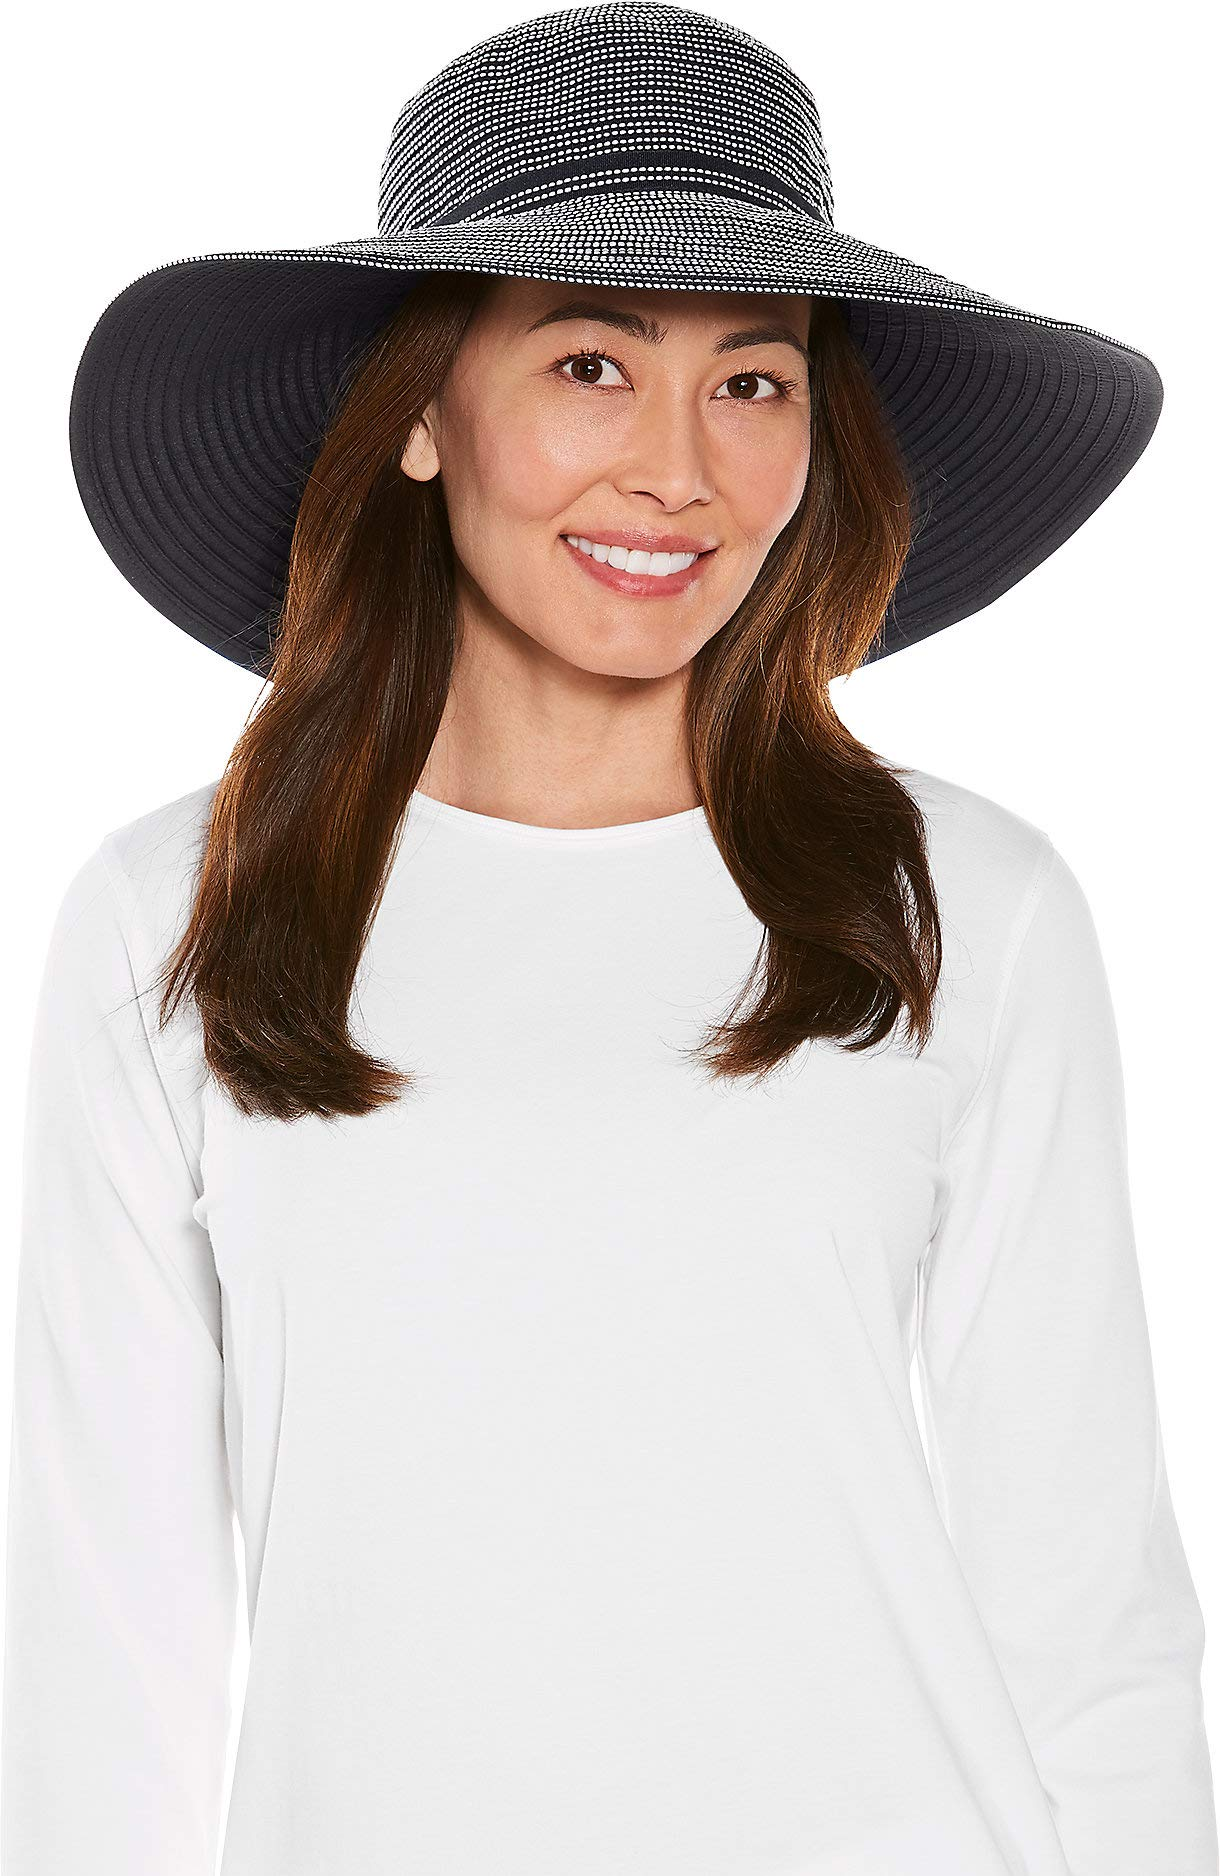 Coolibar UPF 50+ Women's Reversible Zoey Ribbon Hat - Sun Protective (One Size- White/Black)